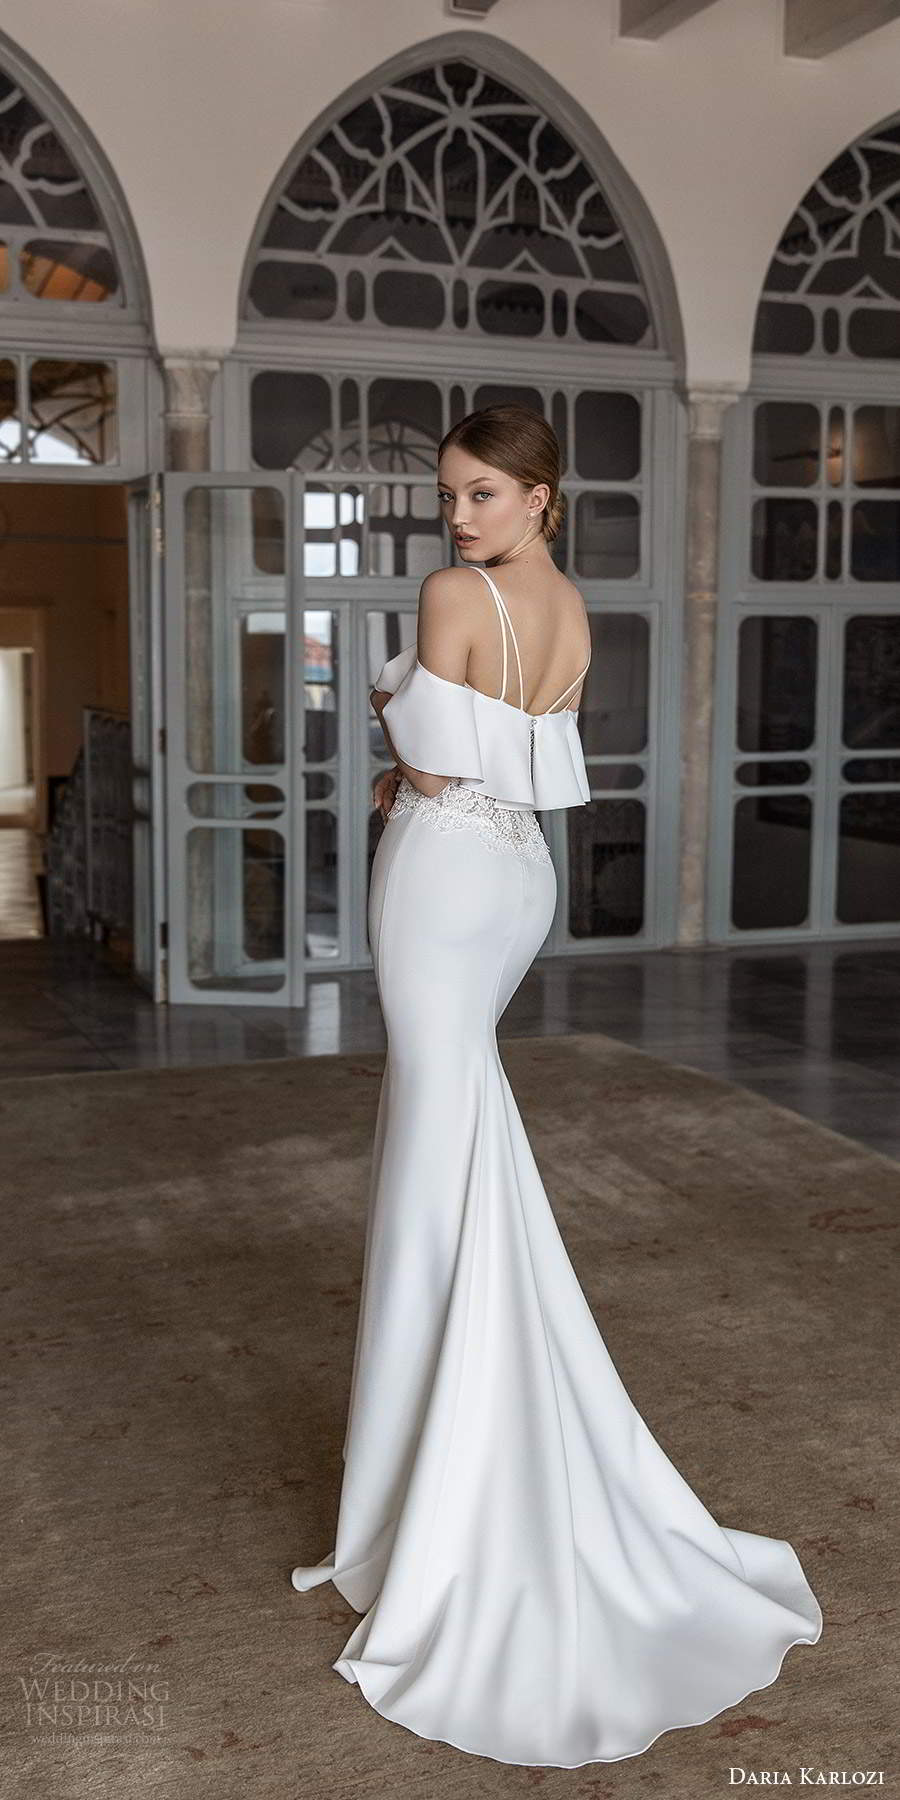 daria karlozi 2021 bridal long sleeves cold shoulder thin straps sheer embellished bodice clean minimalist sheath wedding dress chapel train (6) bv